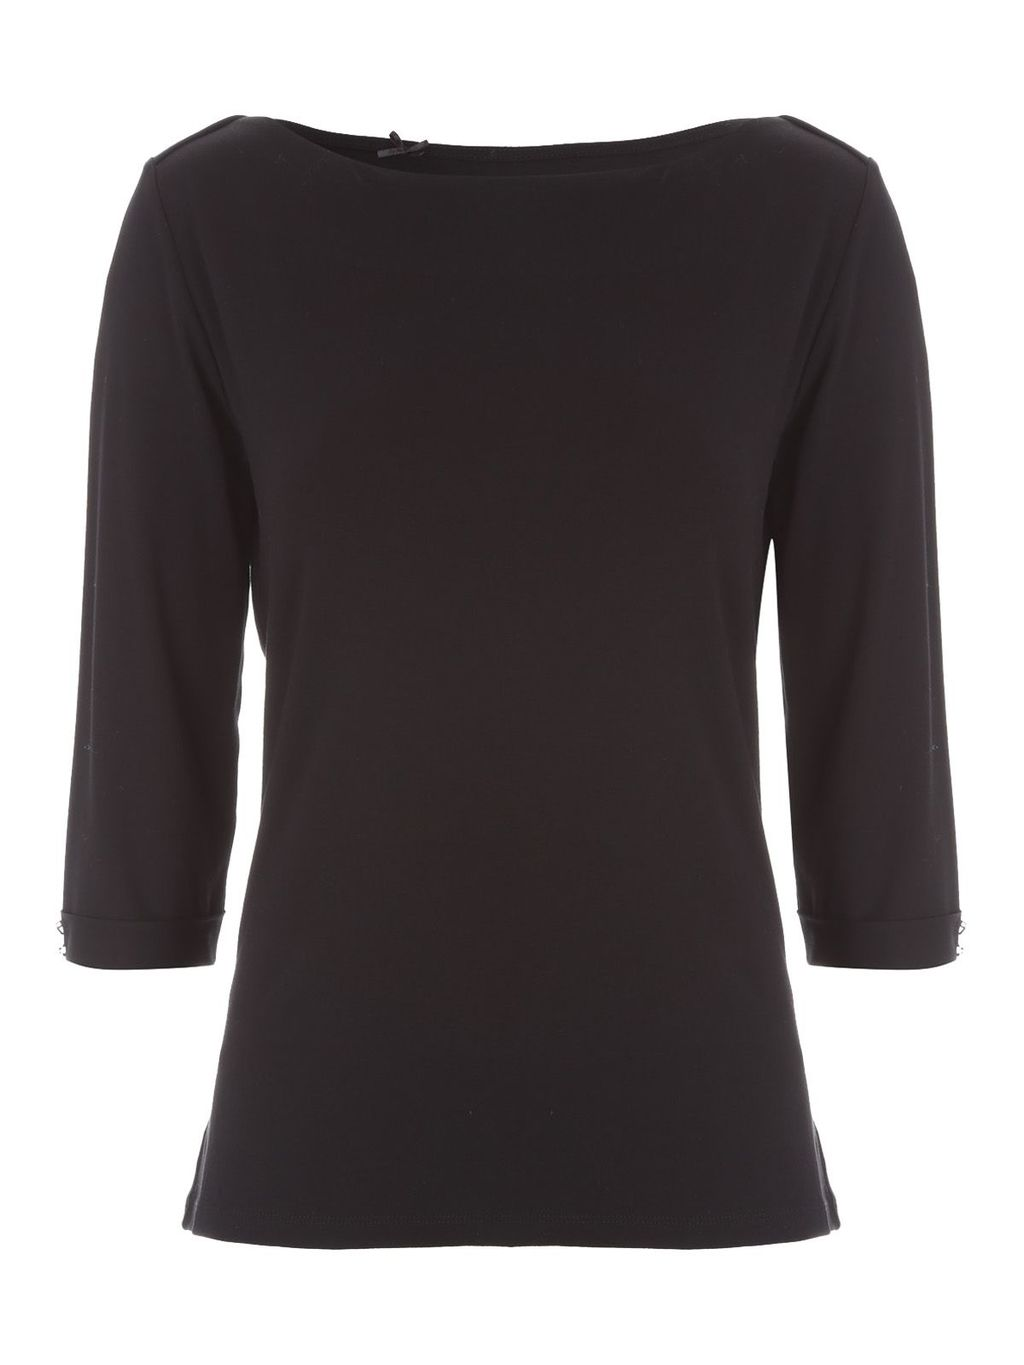 3/4length Boat Neck Top, Black - neckline: slash/boat neckline; pattern: plain; predominant colour: black; occasions: casual, work, creative work; length: standard; style: top; fibres: viscose/rayon - stretch; fit: body skimming; sleeve length: 3/4 length; sleeve style: standard; pattern type: fabric; texture group: jersey - stretchy/drapey; season: s/s 2016; wardrobe: basic